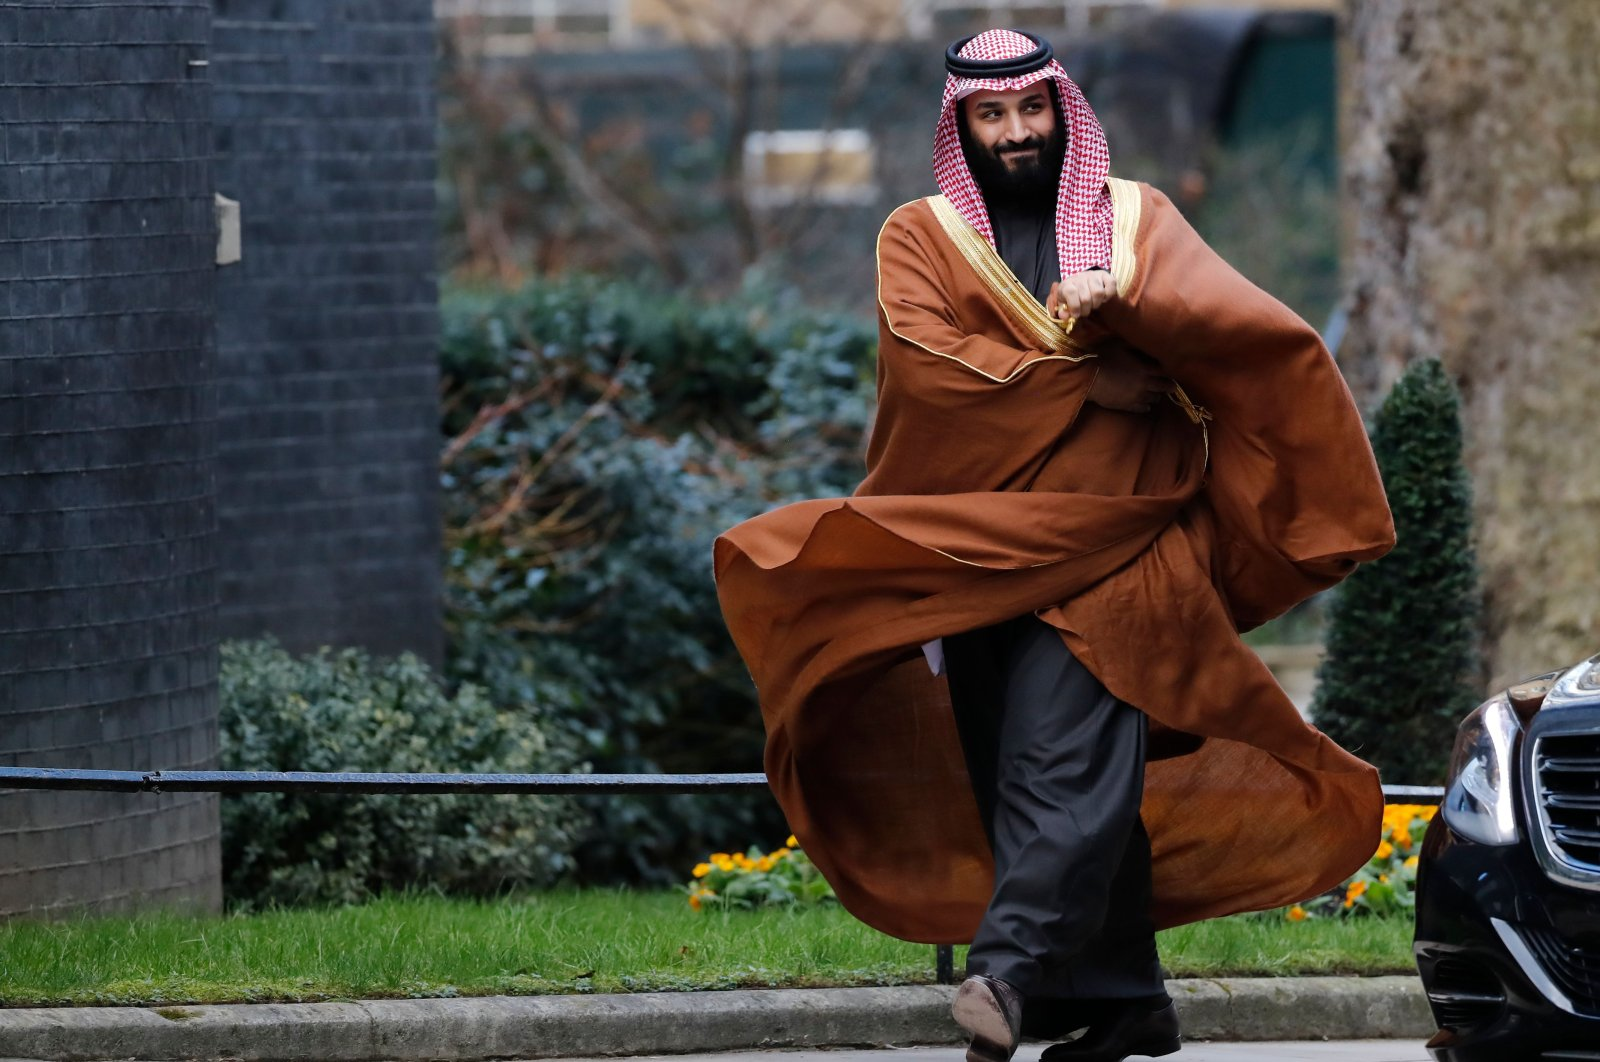 This March 07, 2018, file photo shows Saudi Arabia's Crown Prince Mohammed bin Salman arriving for talks at the British Prime Minister's office at 10 Downing Street, in London. (AFP Photo)